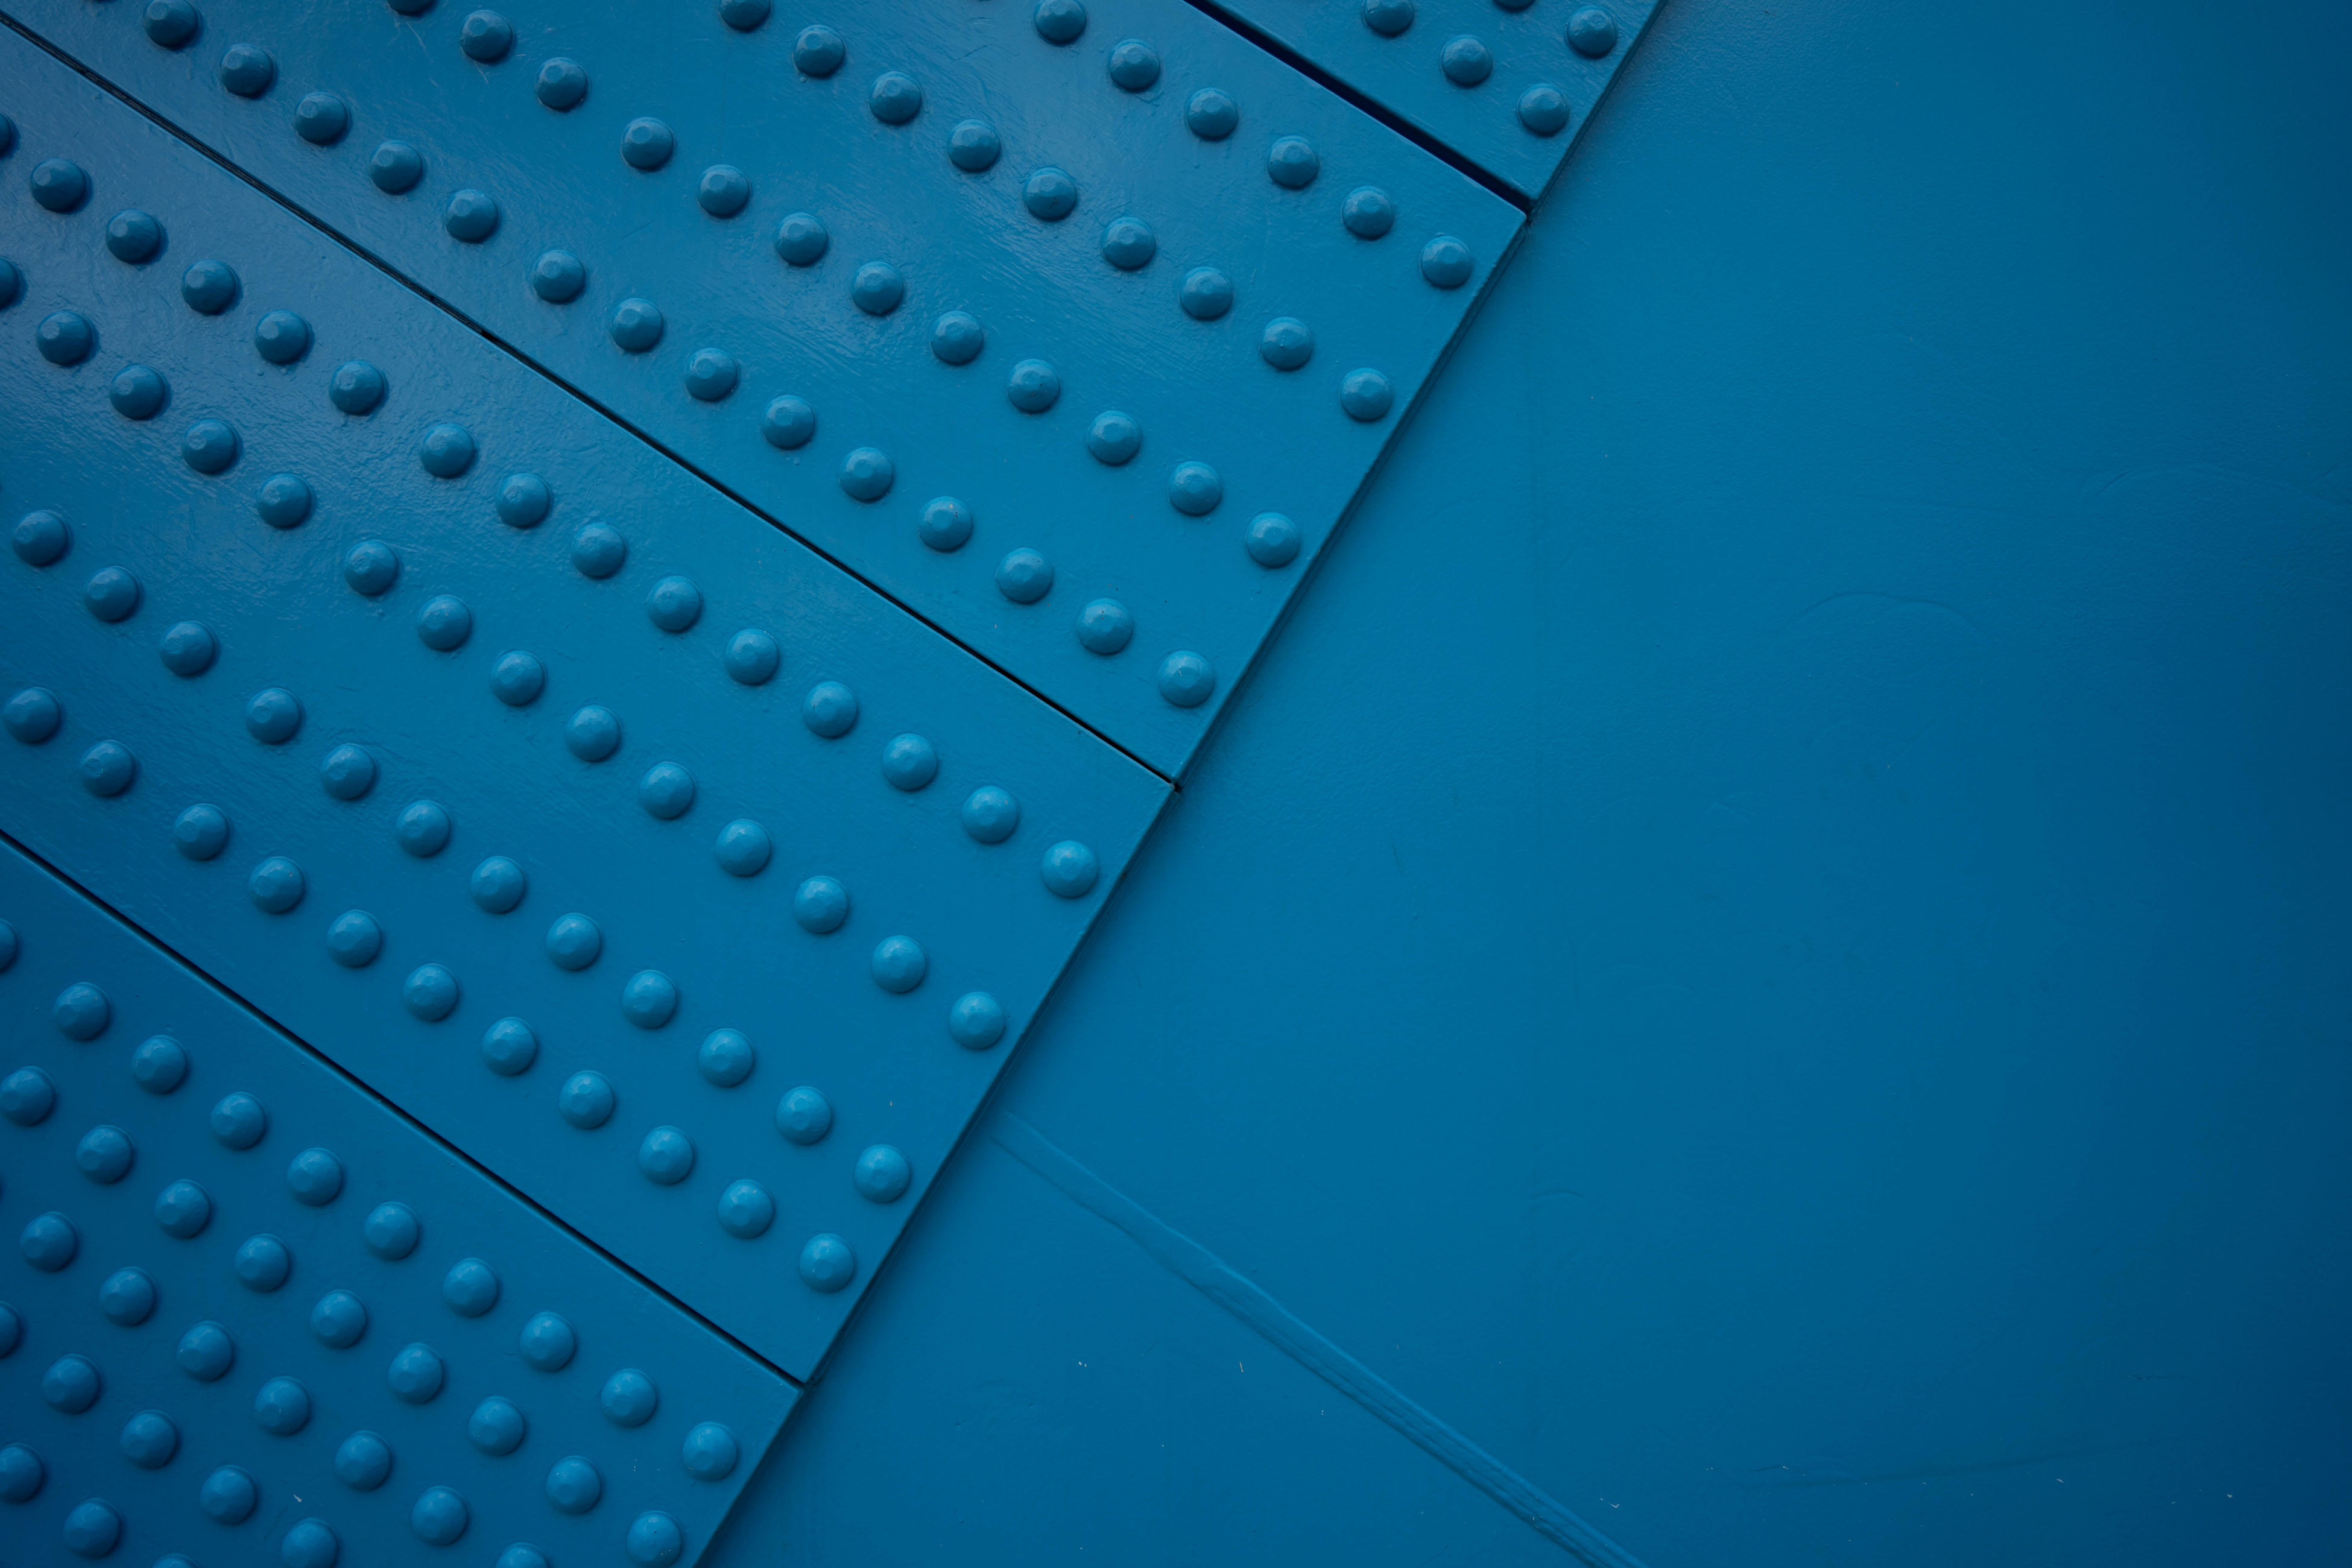 low angle view, blue, metal, modern, geometric shape, surface level, blue background, repetition, upward view, studio shot, man made object, curve